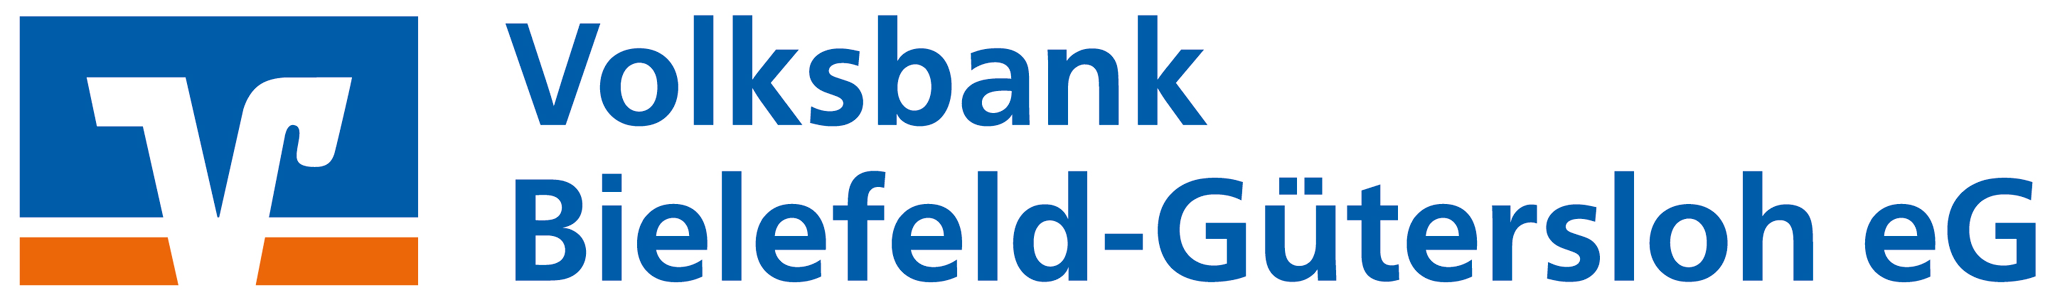 Volksbank Bielefeld-Gütersloh eG